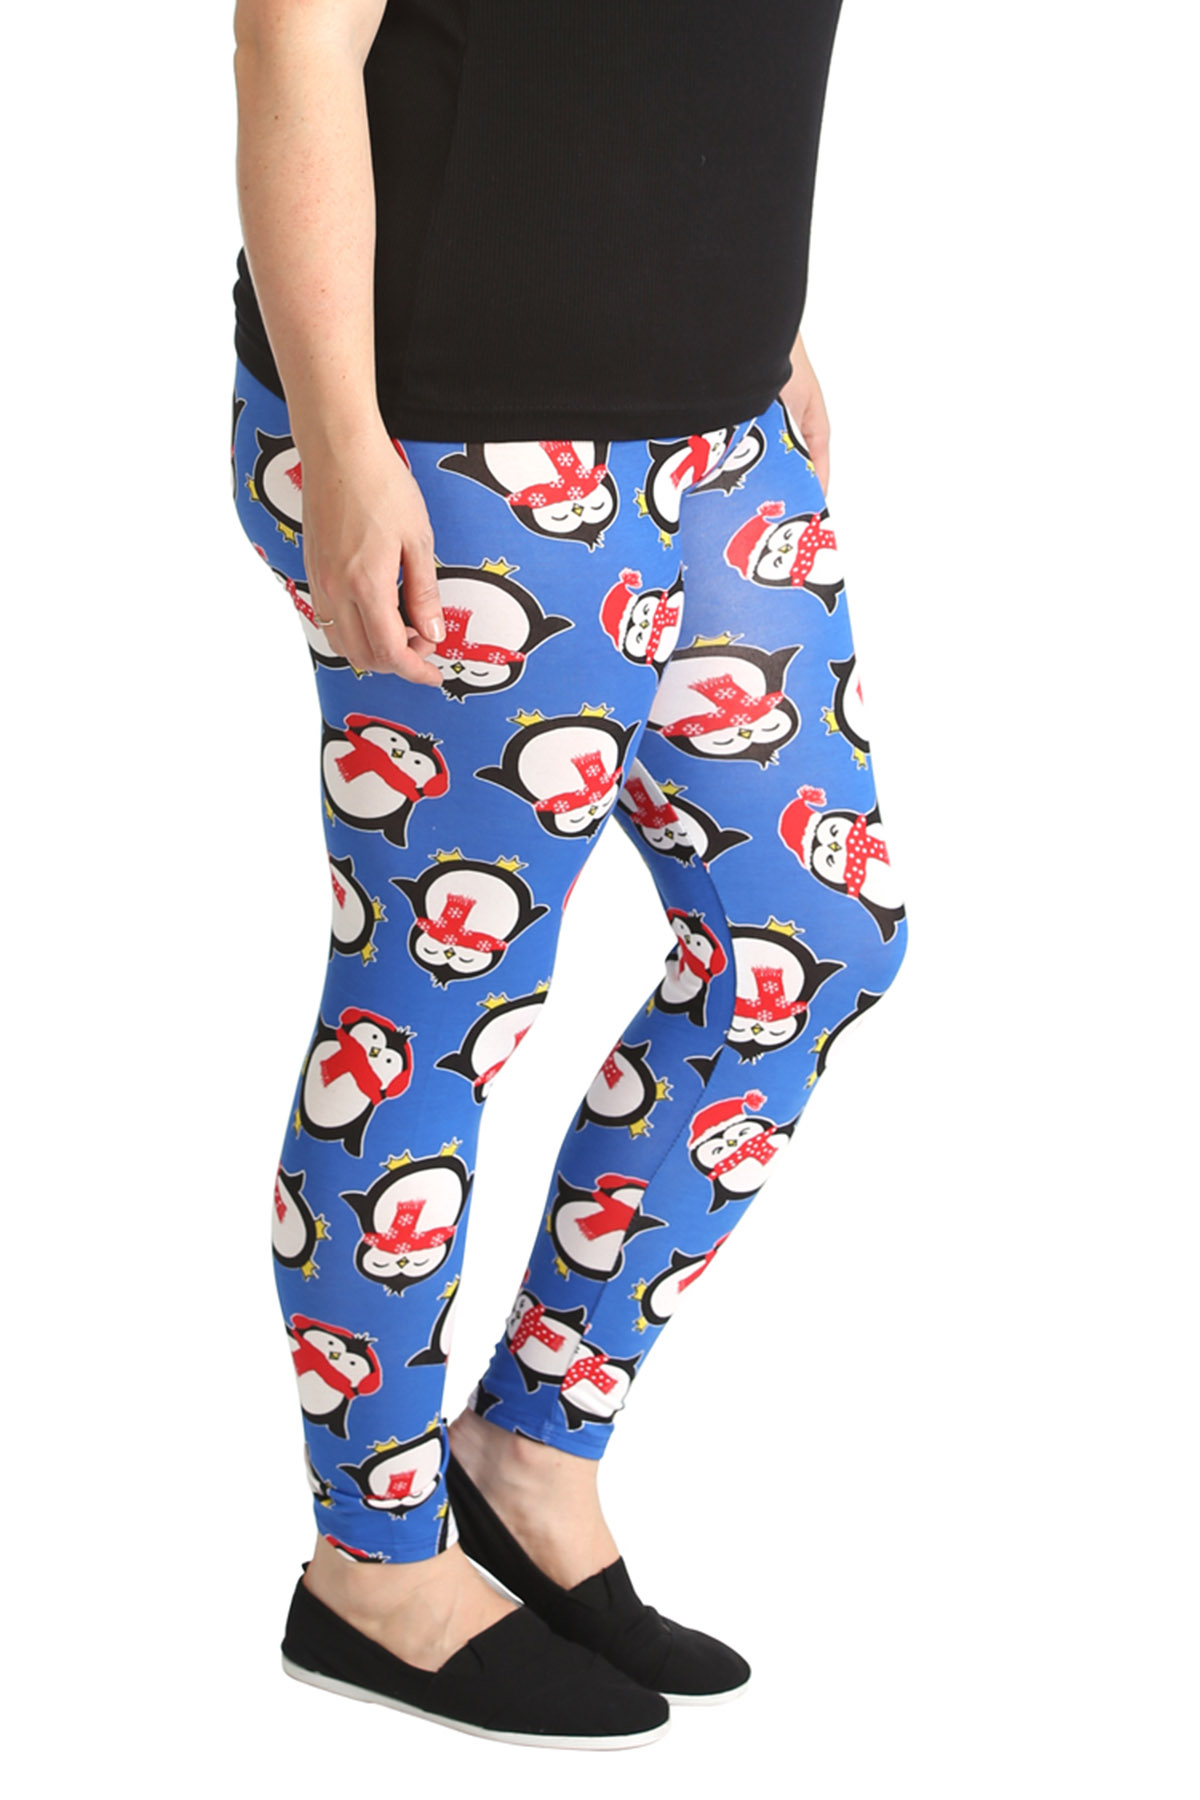 Leggalicious Plus Size Christmas Leggings - Curvy. Pre-Owned. Women's Plus Size Stretchy Christmas Print Leggings Full Long Pants See more like this. Vintage Christmas Snowman Flakes Tree Tall & Curvy Yoga TC Buttery Free Shipping. Brand New. $ Buy It Now. Free Shipping.